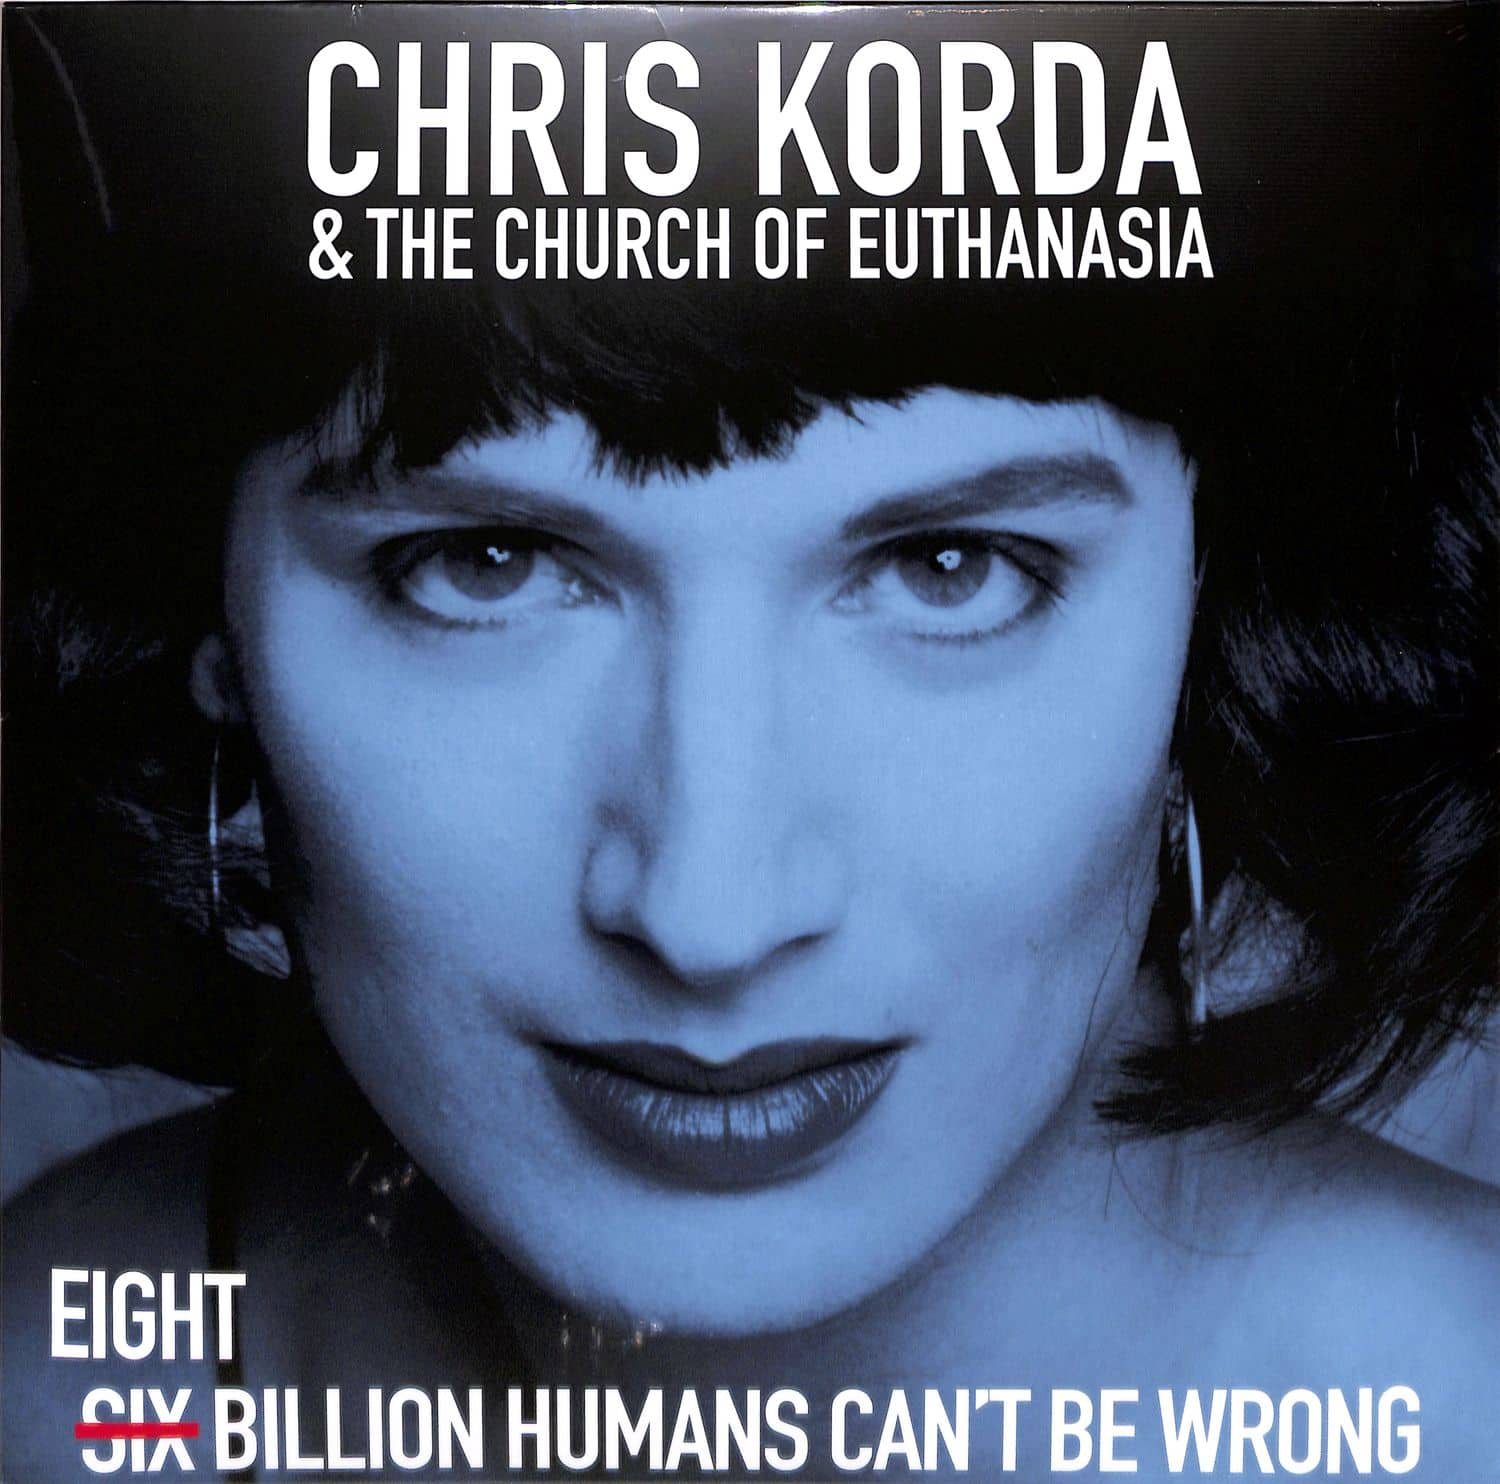 Chris Korda and The Church Of Euthanasia - 8 BILLION HUMANS CANT BE WRONG